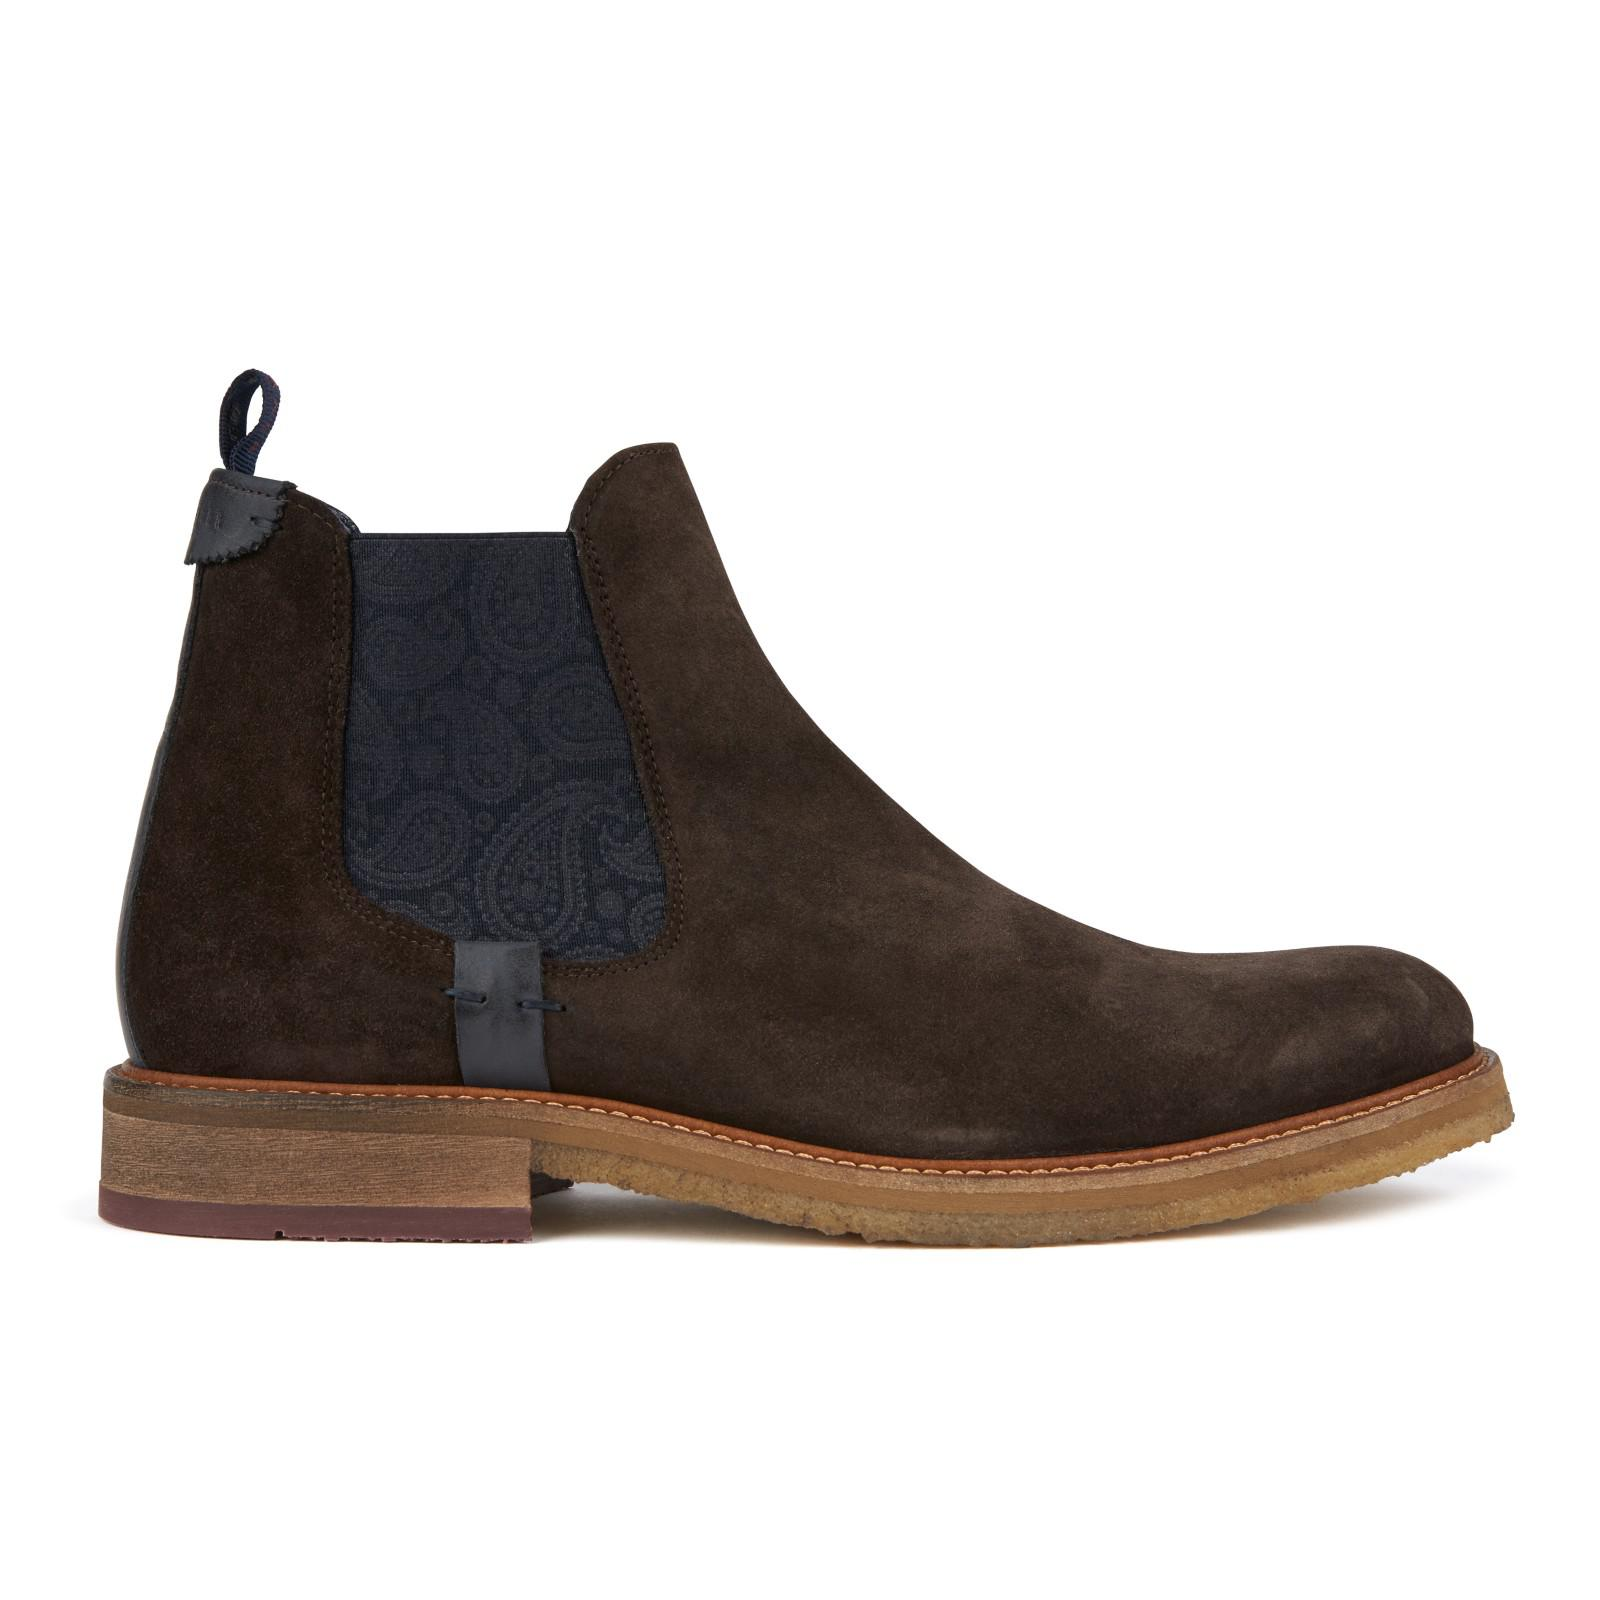 1fa438d689cf Ted Baker Bronzo Boots in Brown for Men - Lyst